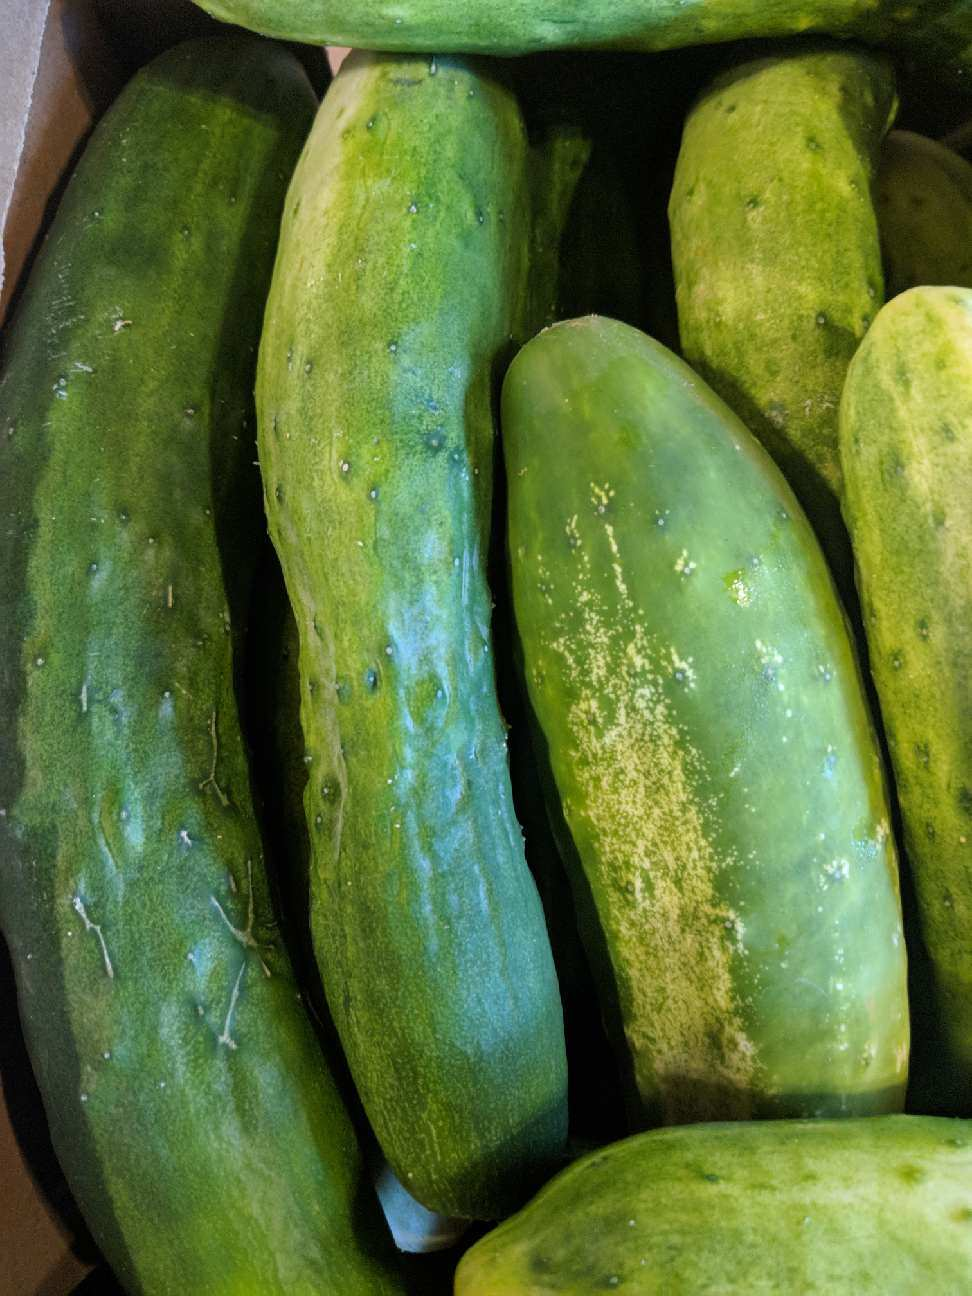 farm-fresh-cucumbers-reston-farm-market-va.JPG